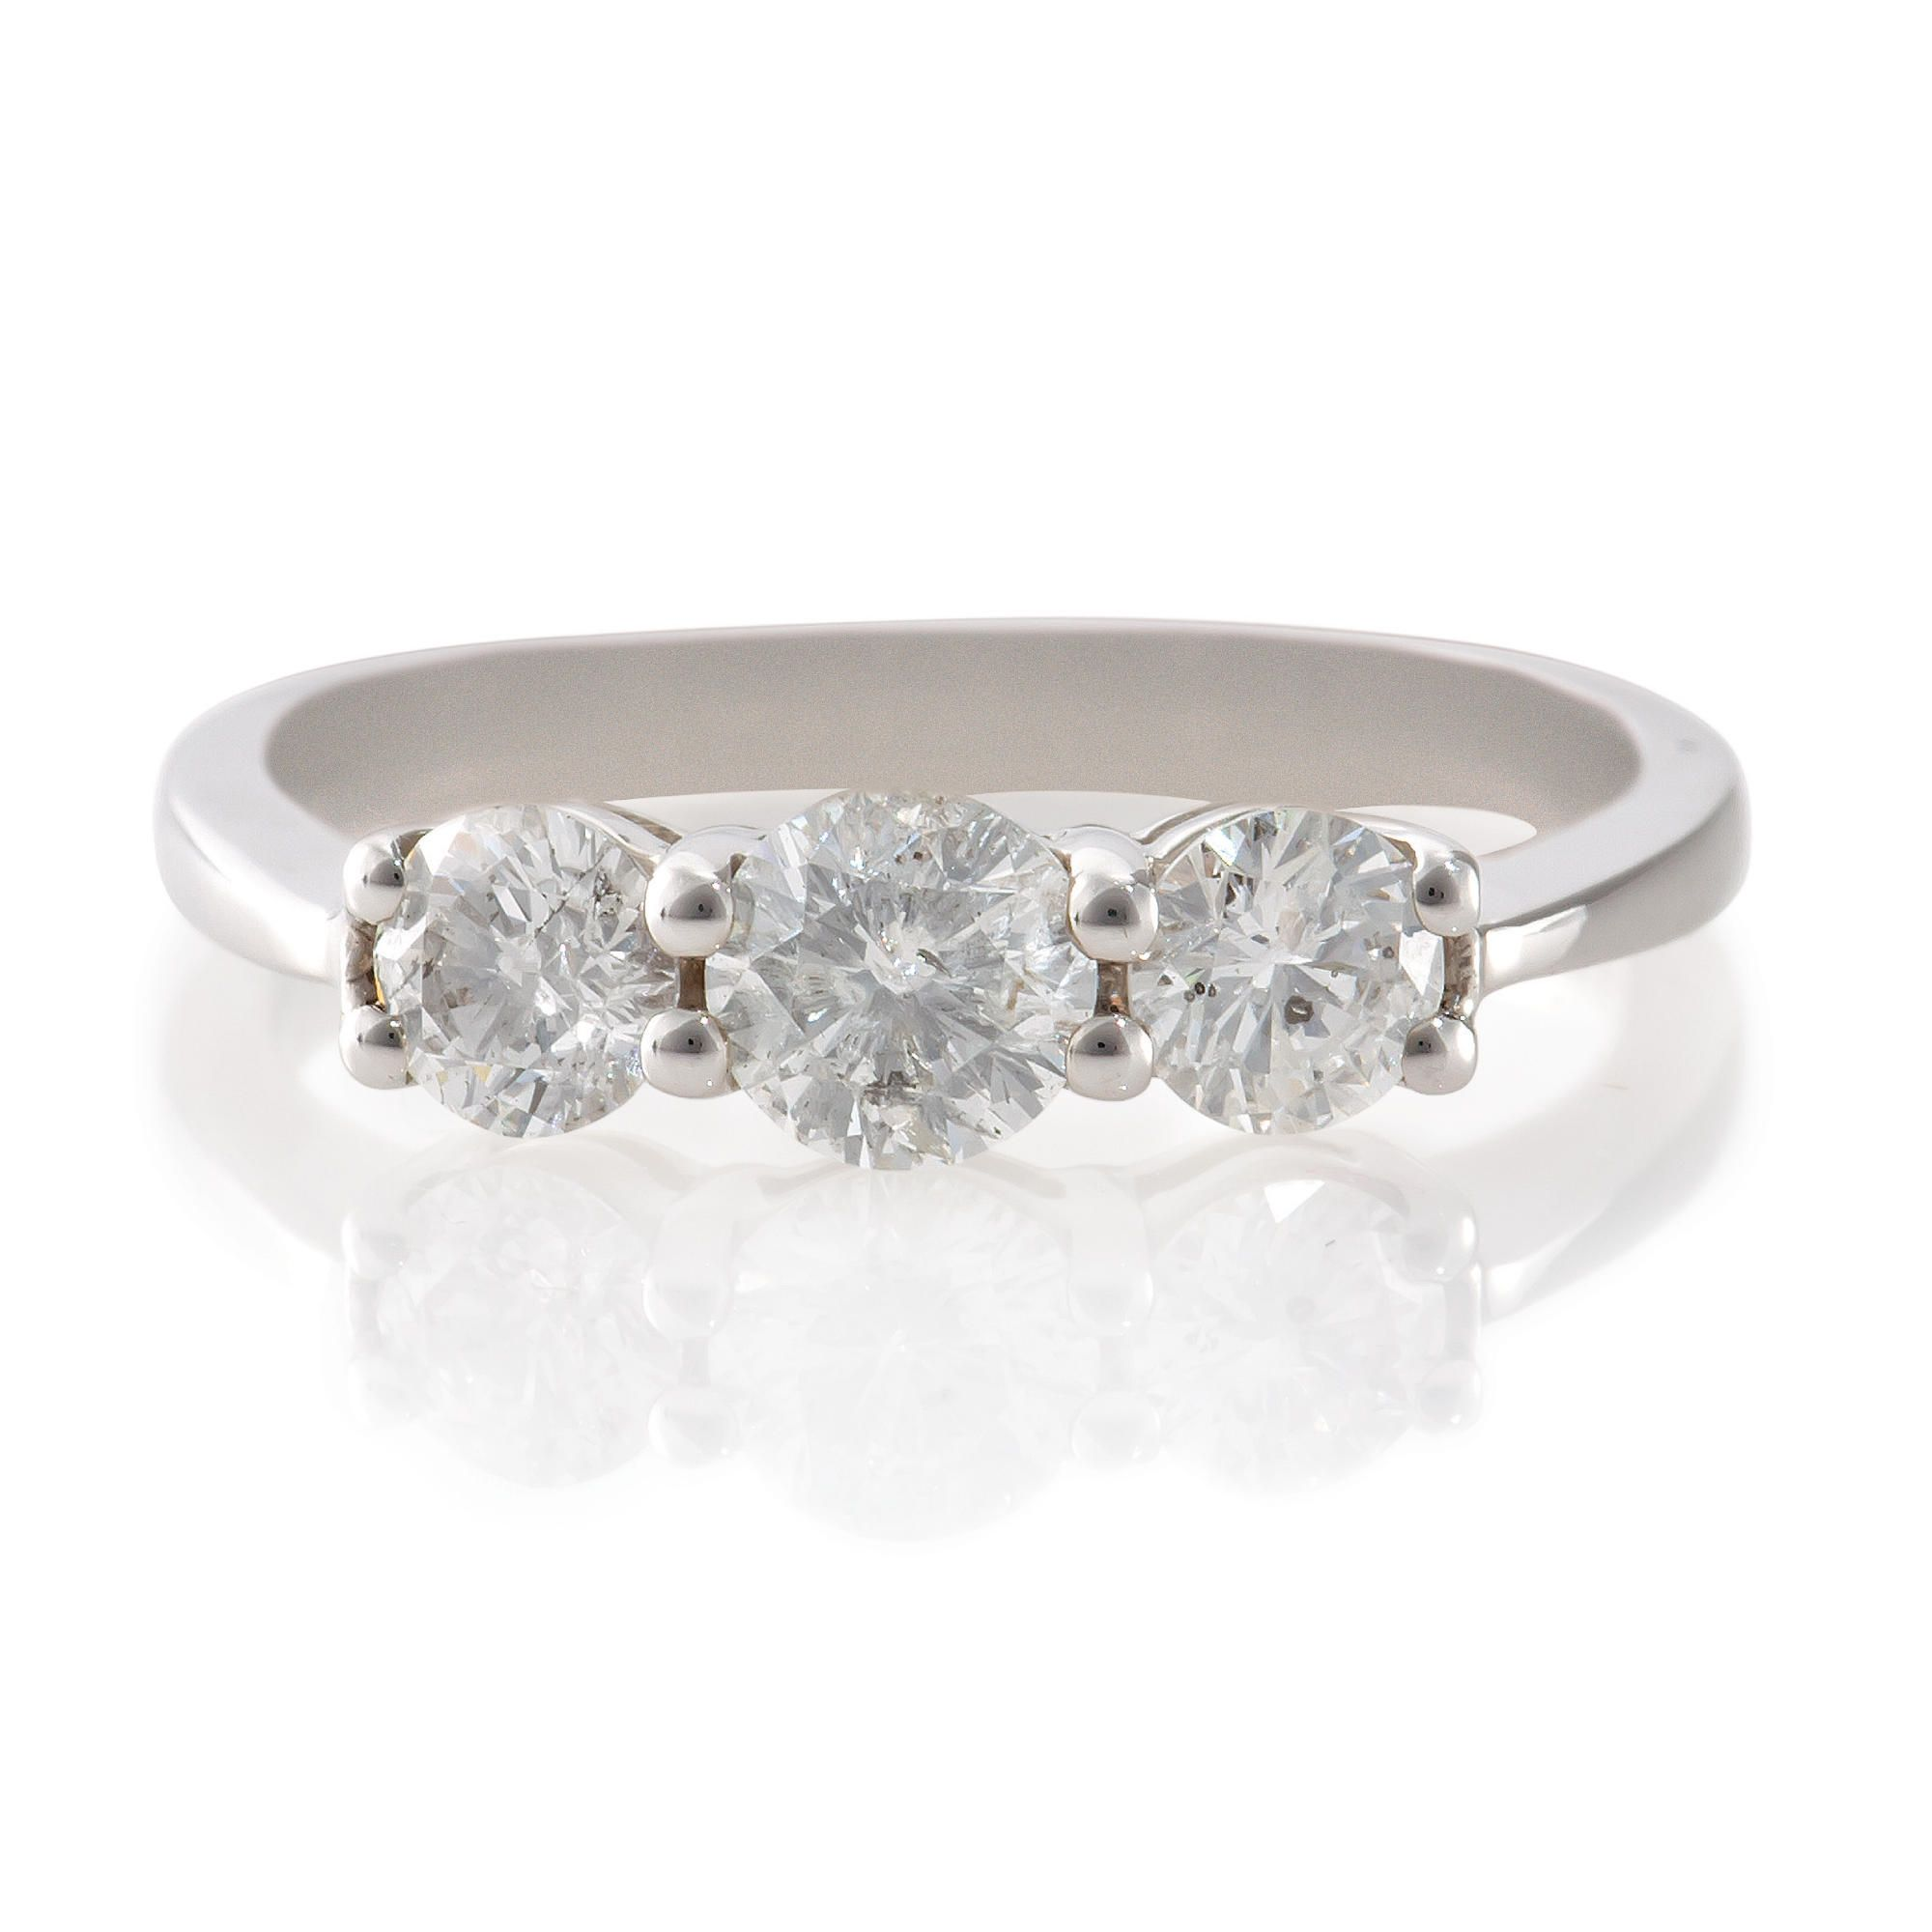 9ct White Gold 1ct Diamond 3 Stone Ring, N at Tesco Direct